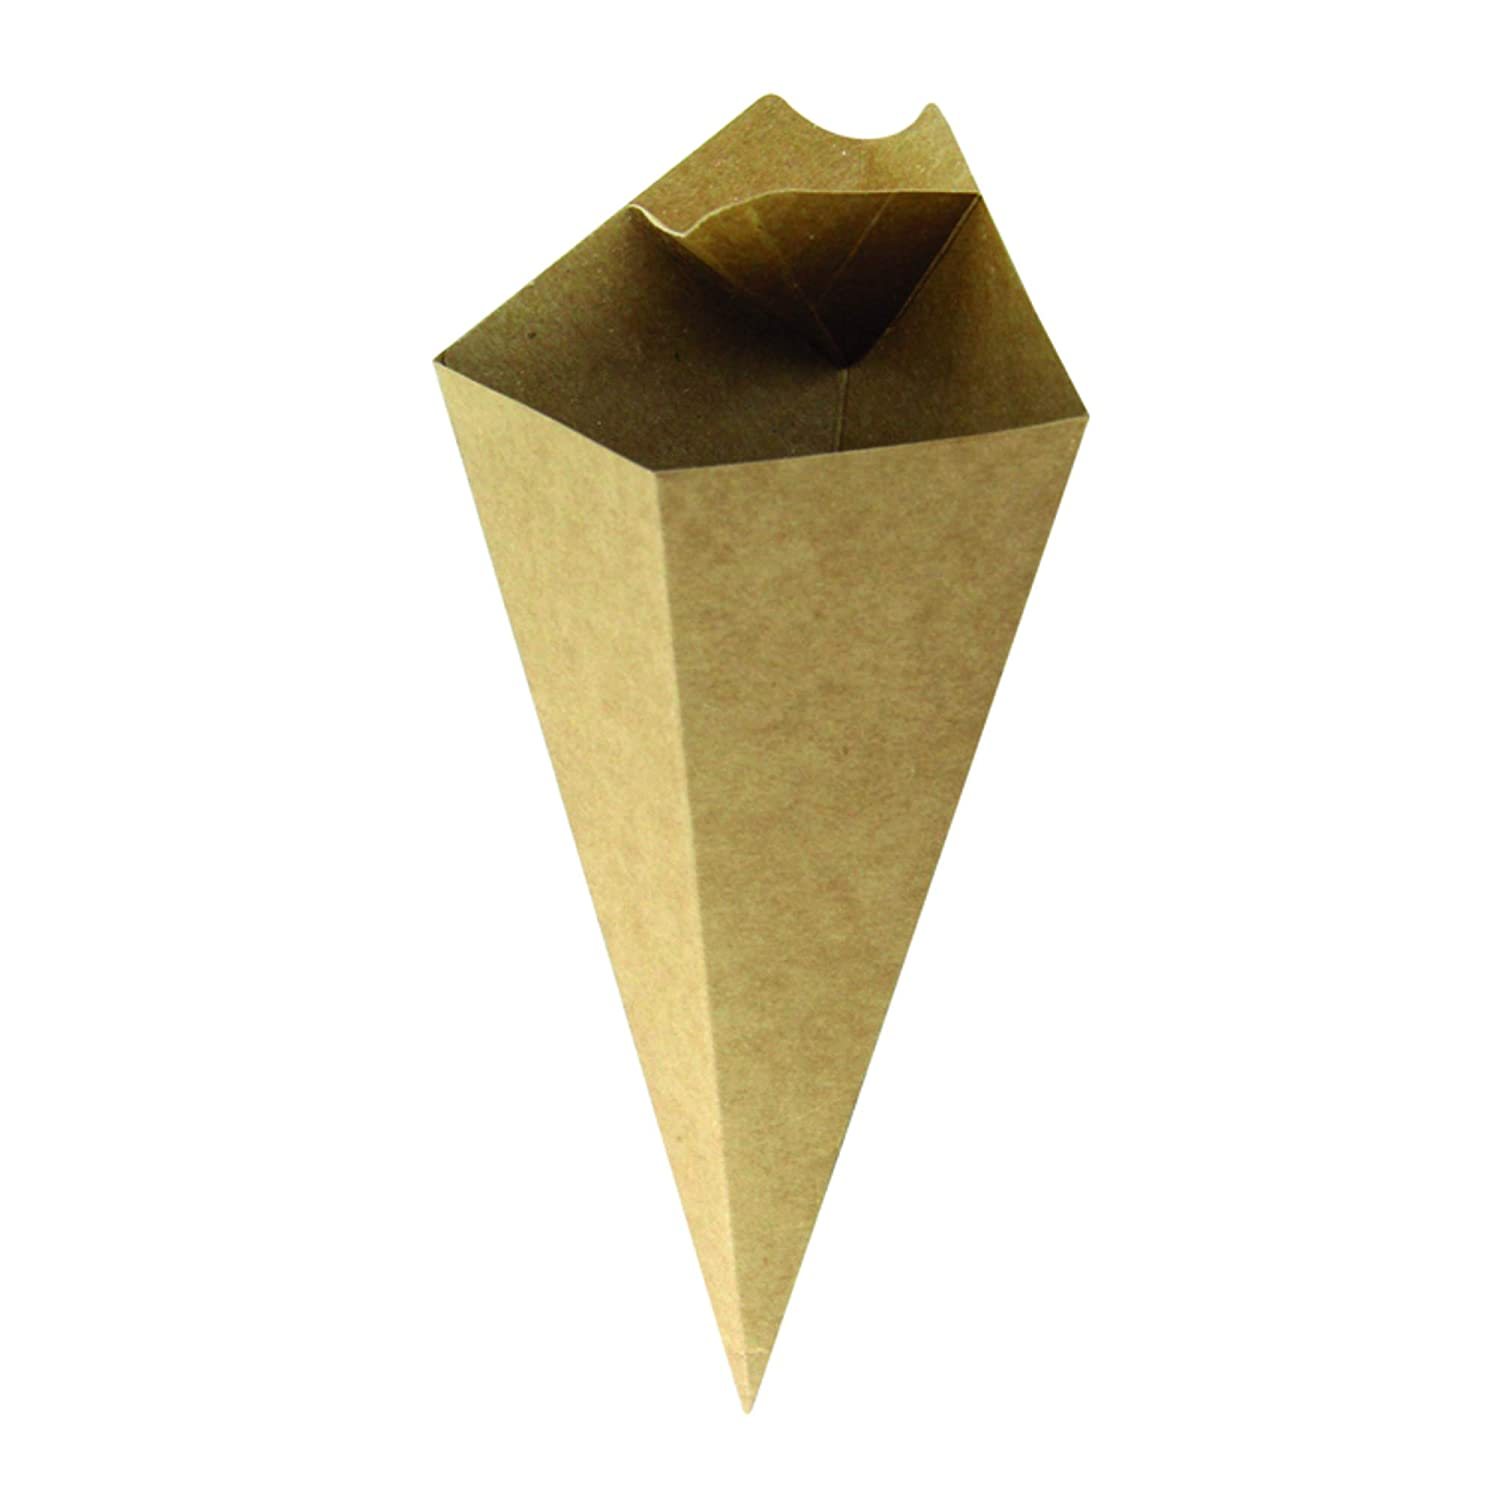 PacknWood Kraft Paper Cones with Built in Dipping Sauce Compartment, 7.5